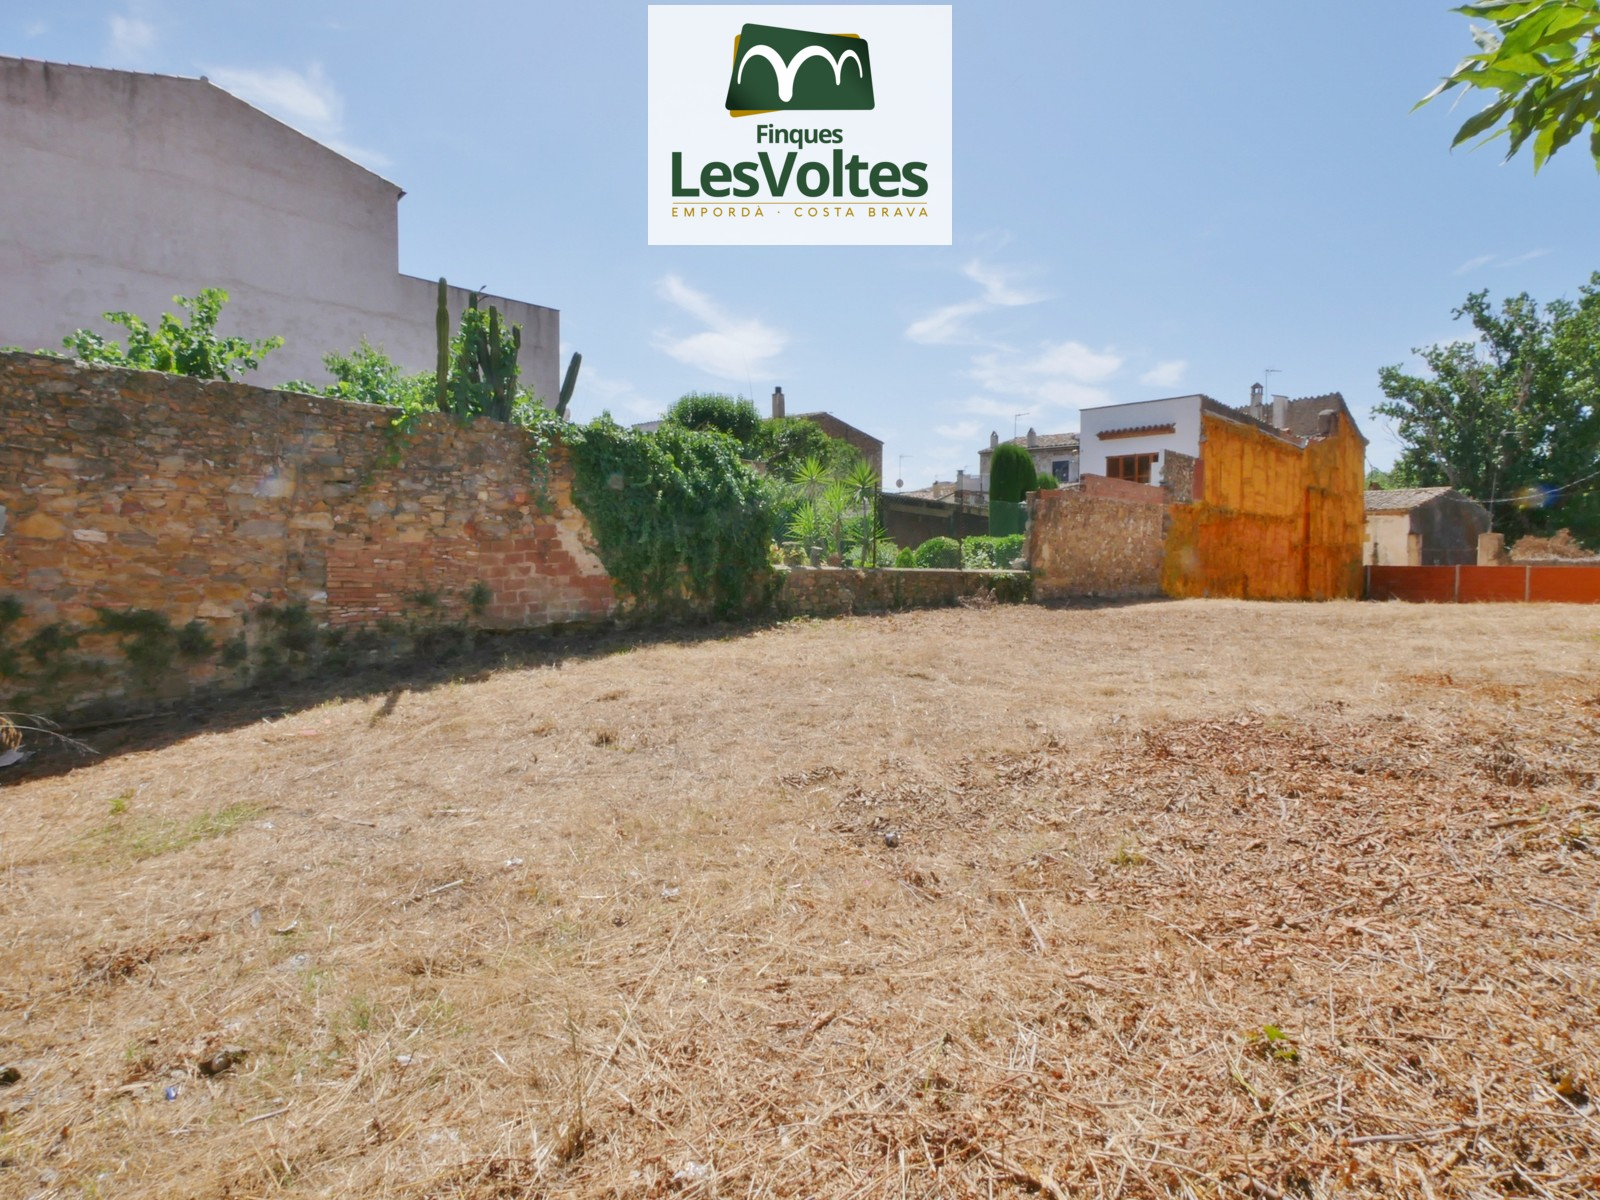 EXCEPTIONAL OPPORTUNITY! 605 M2 LAND FOR SALE IN THE CENTER OF LA BISBAL D'EMPORDÀ WITH ENTRANCE BY 2 STREETS.